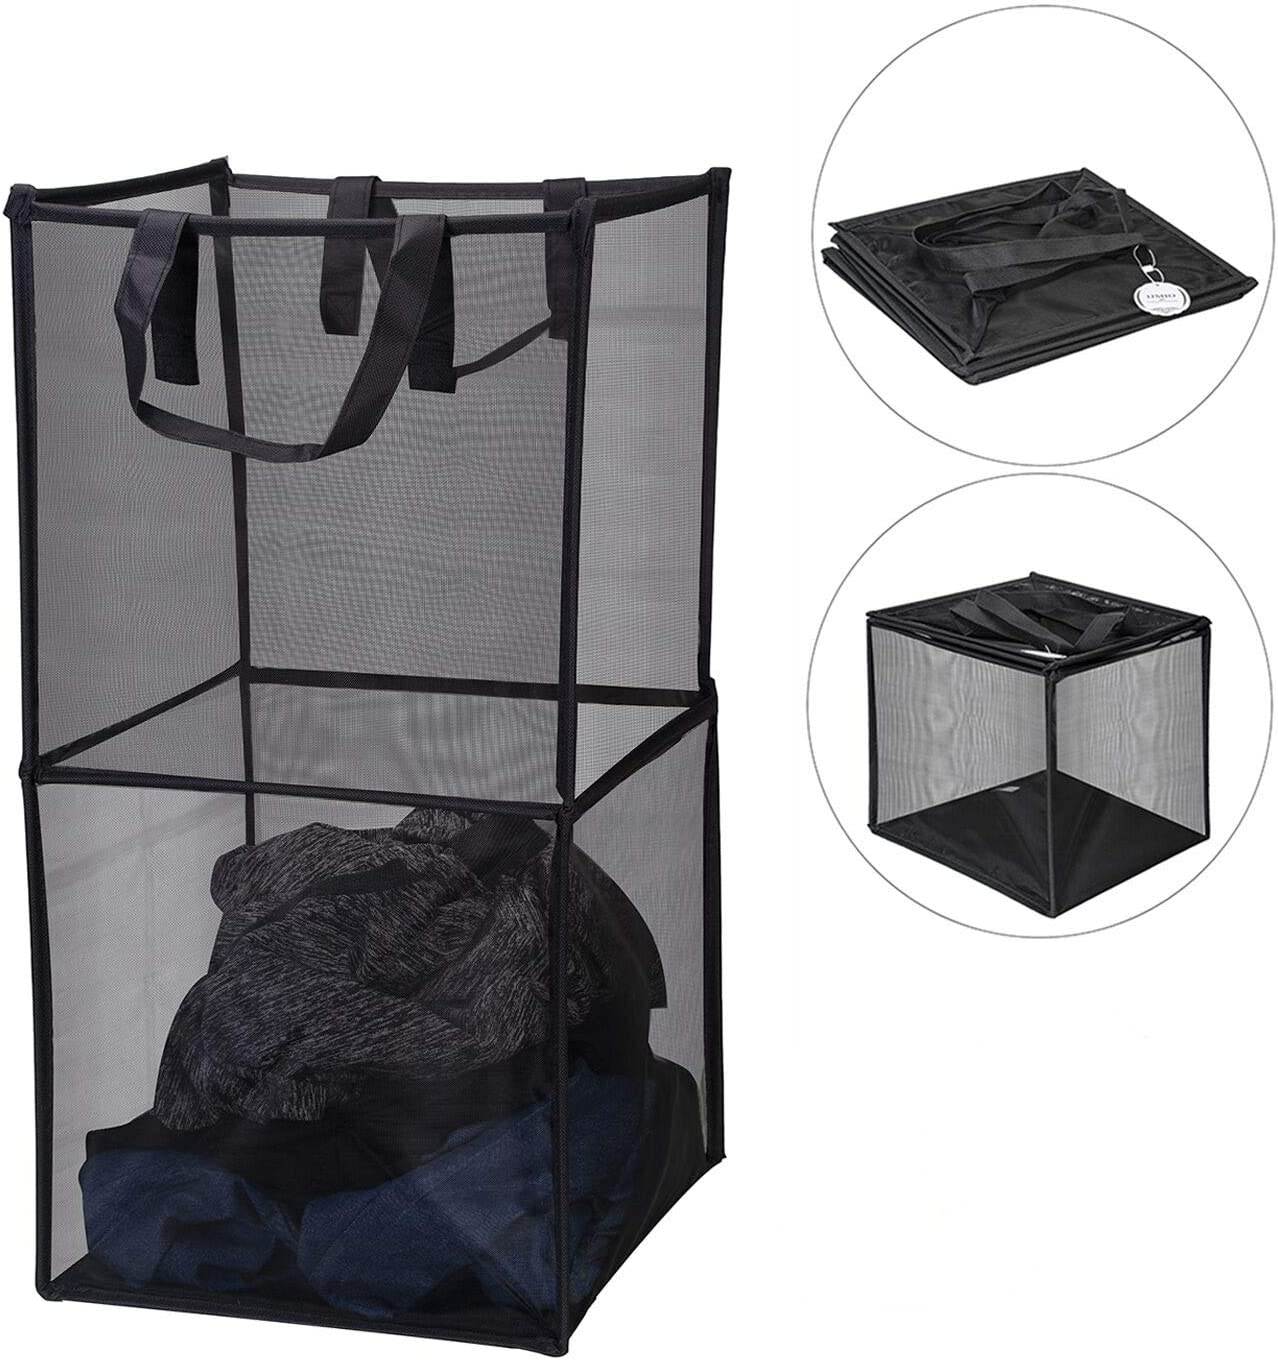 IJMIO Laundry Hamper Foldable Collapsible Mesh Clothes Laundry Basket Pop Up Large Tall Washing Hamper for Bathroom Storage 2 Layers (Black)